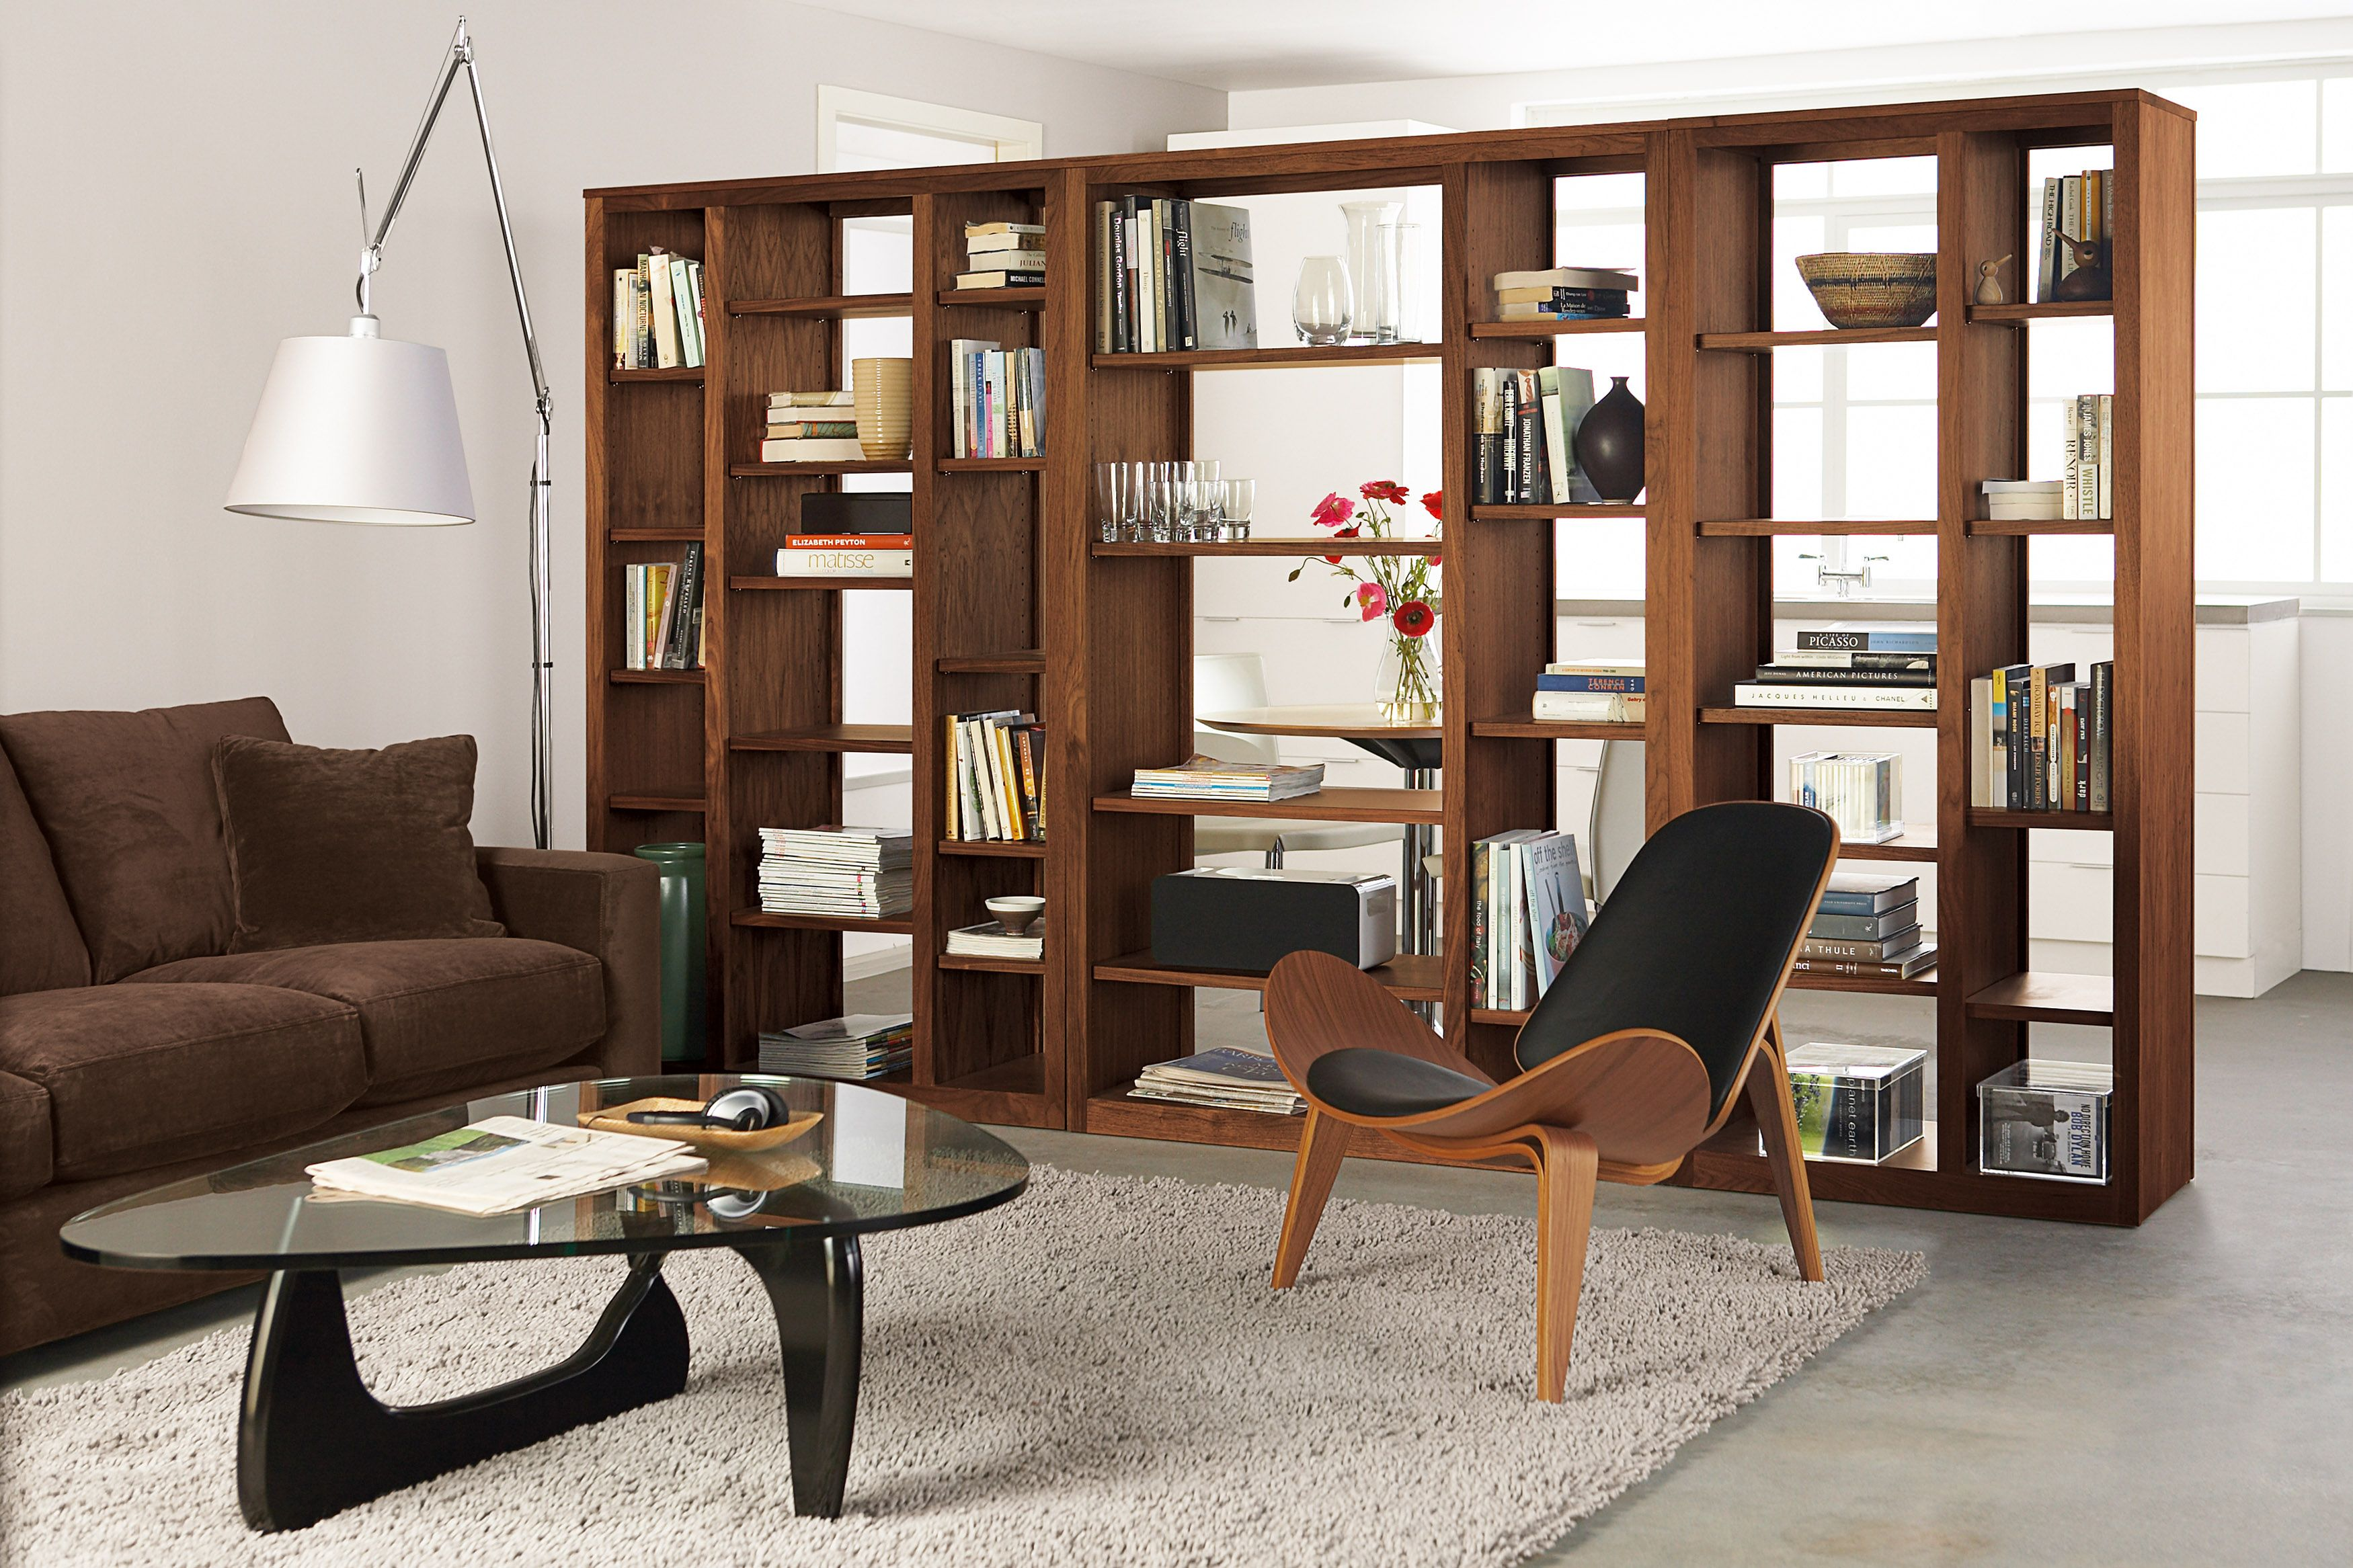 sliding of divider partitions wall walls the for screen room cloth freestanding panel folding bedroom bedrooms three bookcases open dividers bookcase temporary most modern ikea partition